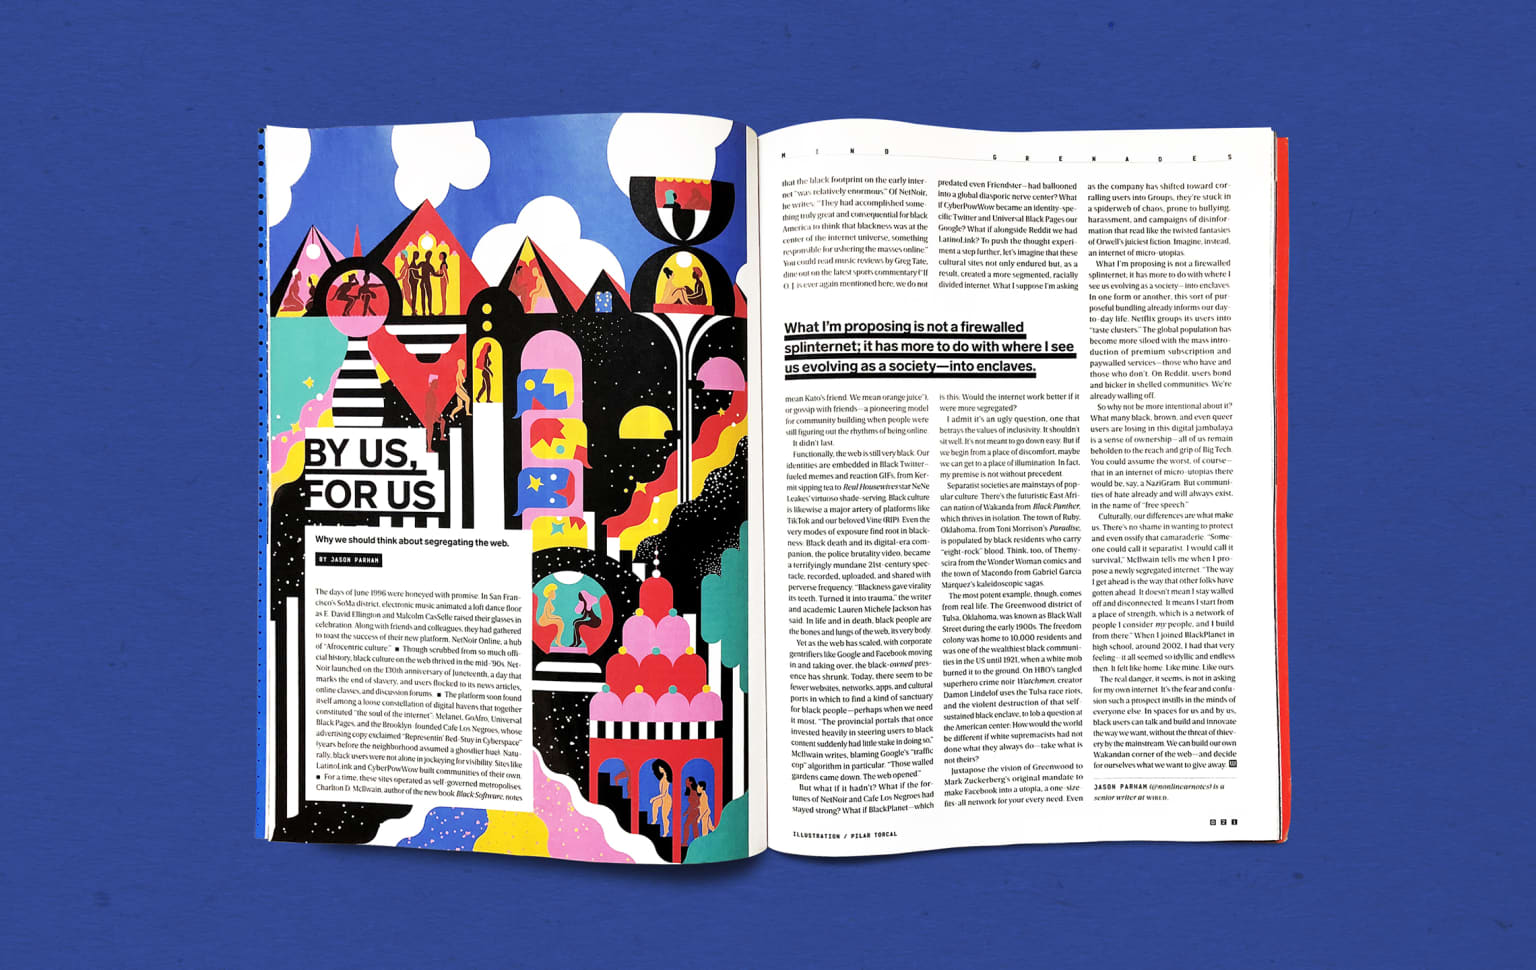 WIRED US — By us, for us